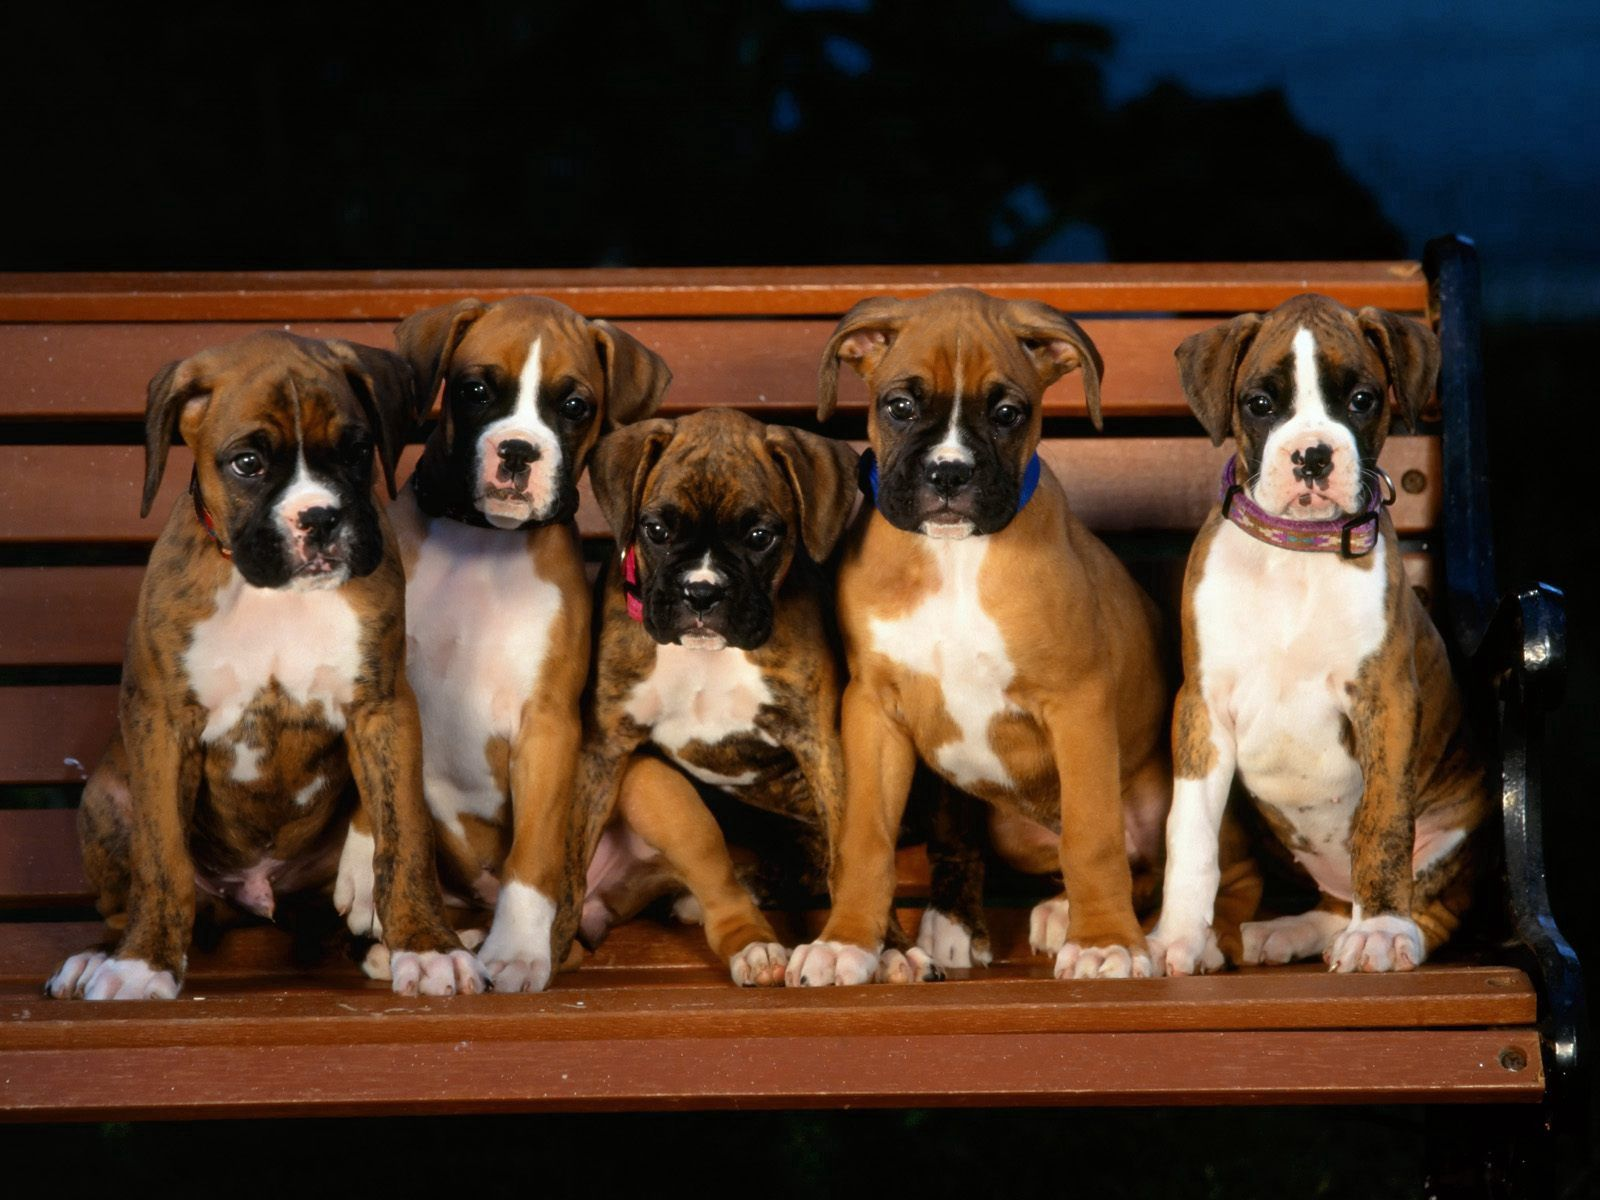 110192 download wallpaper Animals, Puppies, Bulldog, Bench, Evil screensavers and pictures for free